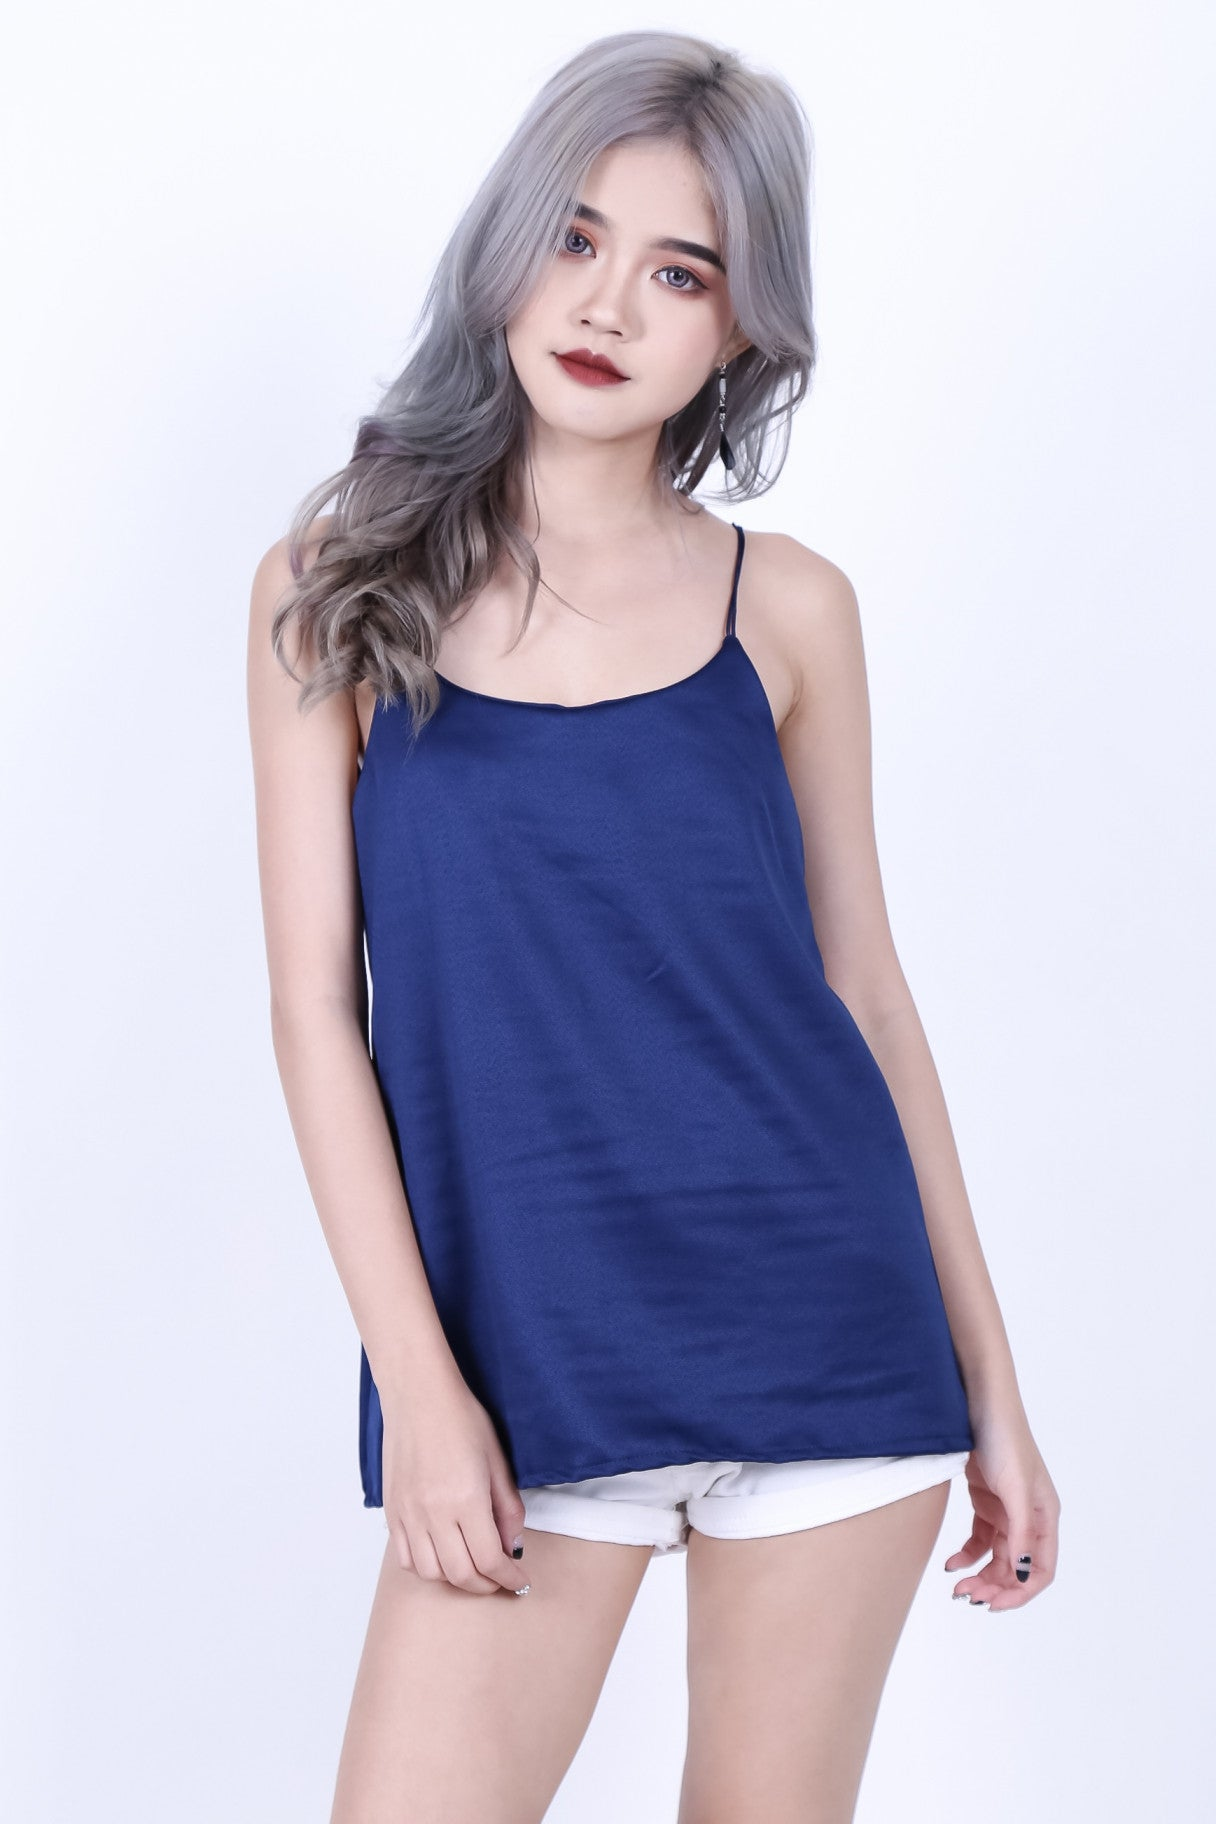 CHARM LOW BACK SPAG TOP IN NAVY - TOPAZETTE